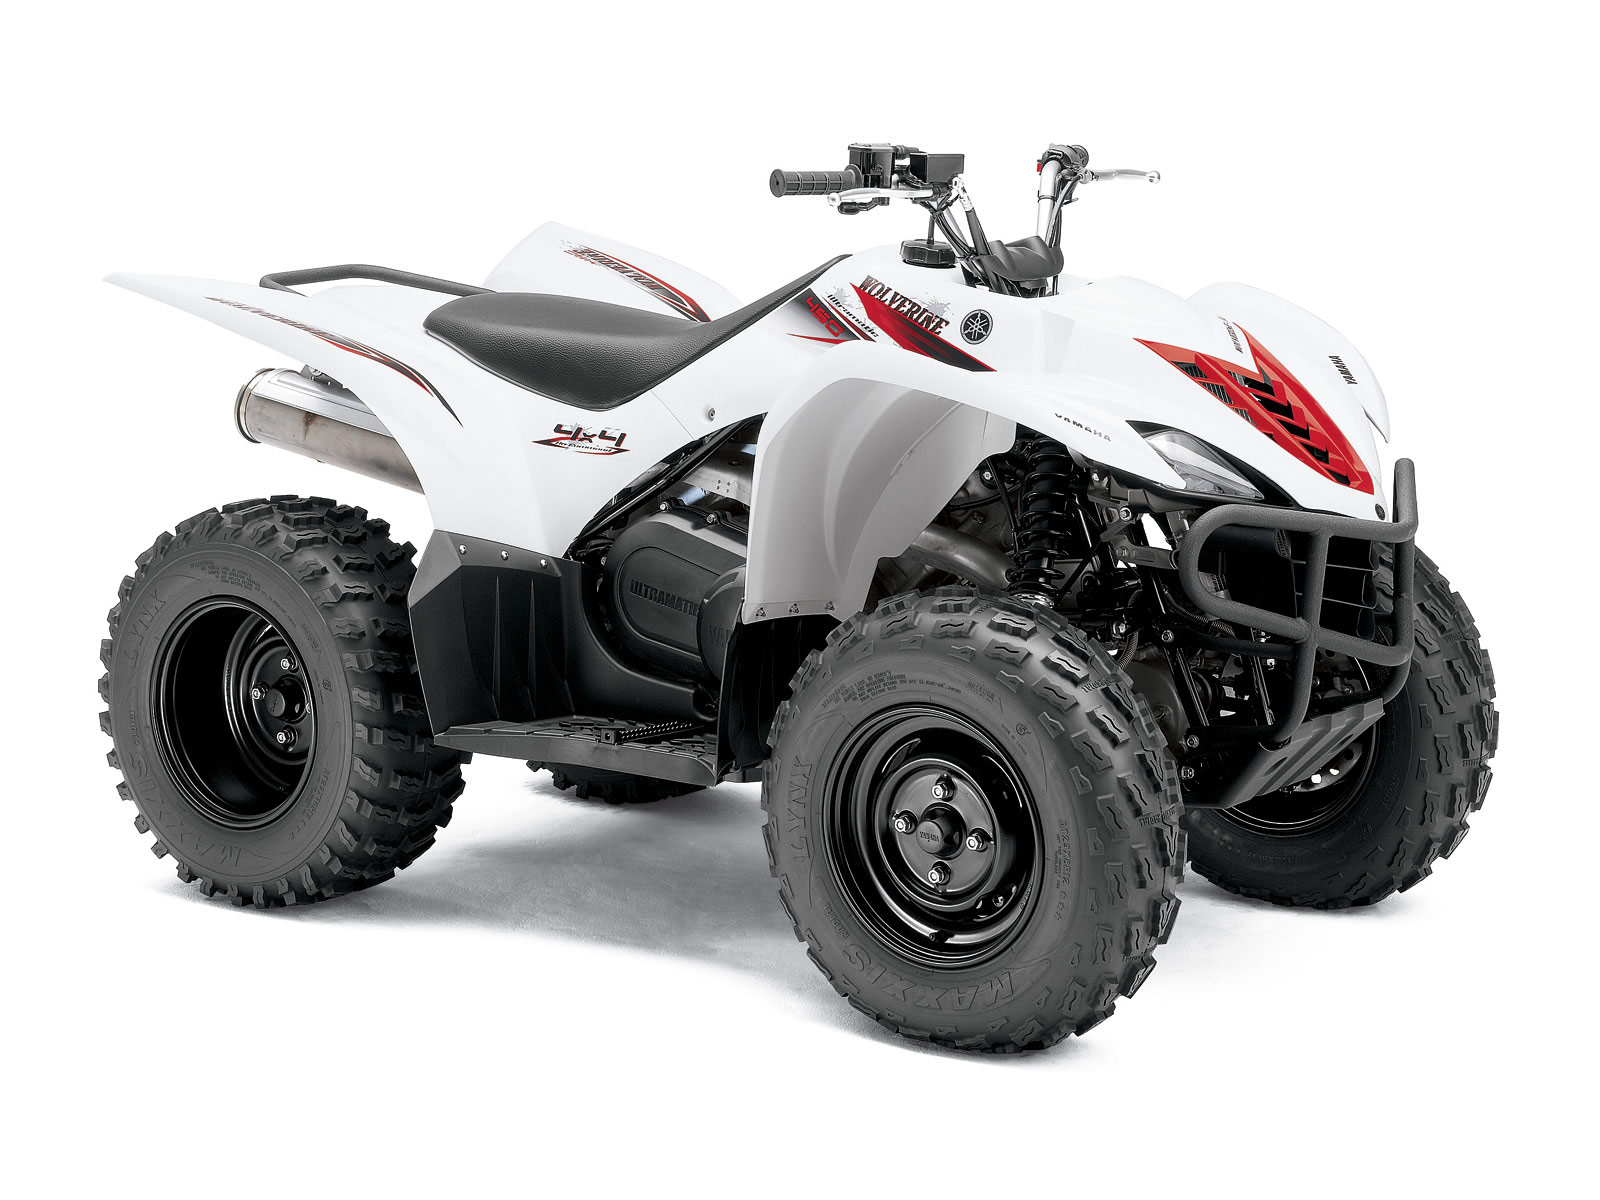 2010 YAMAHA Wolverine 450 4x4 ATV Wallpapers, specifications